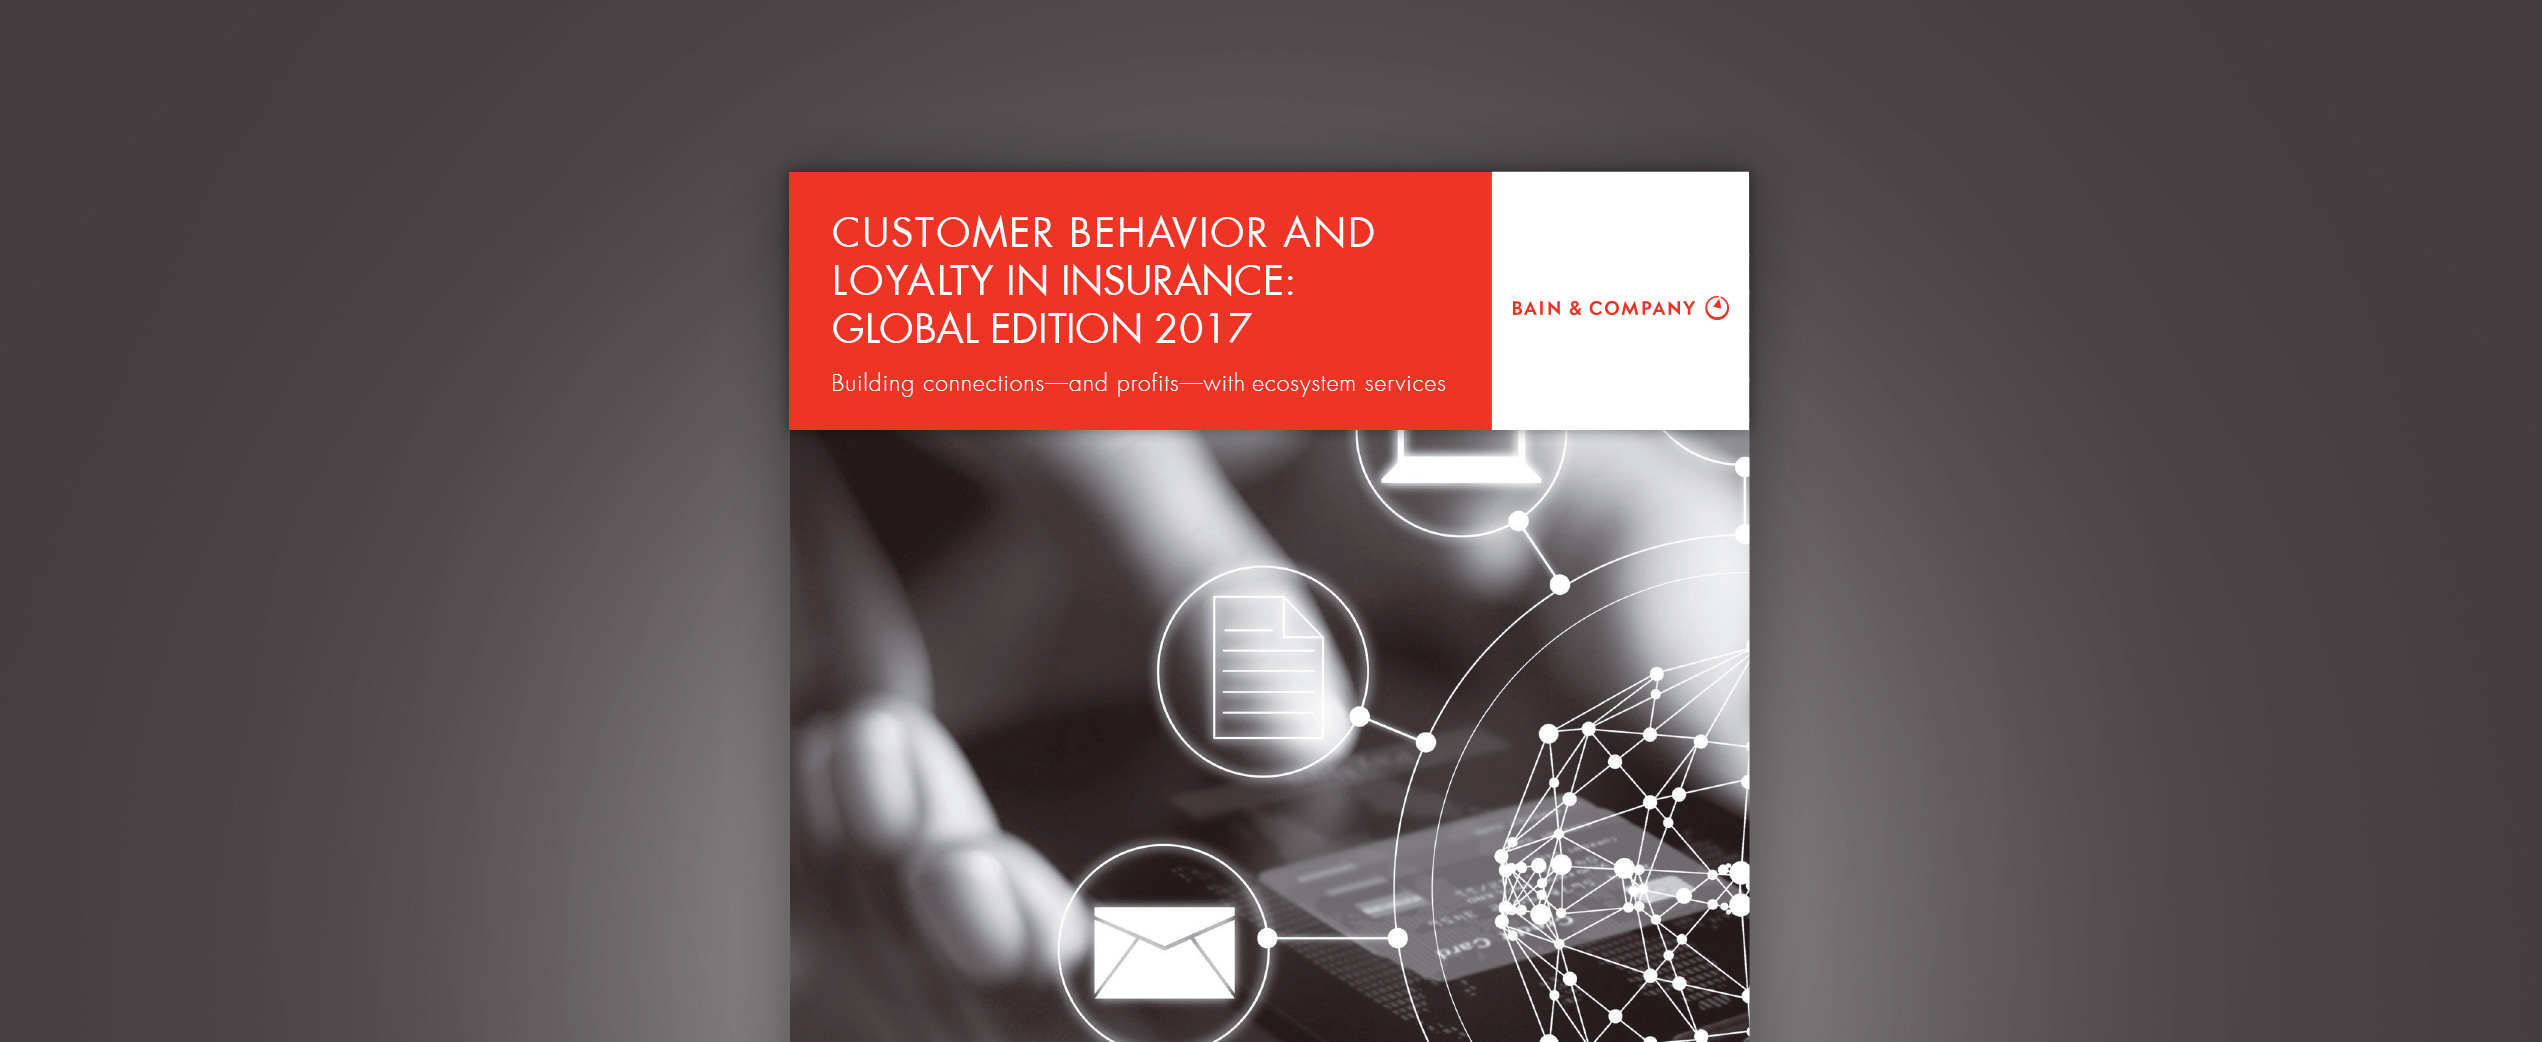 customer loyalty in retail banking global edition 2016 pdf